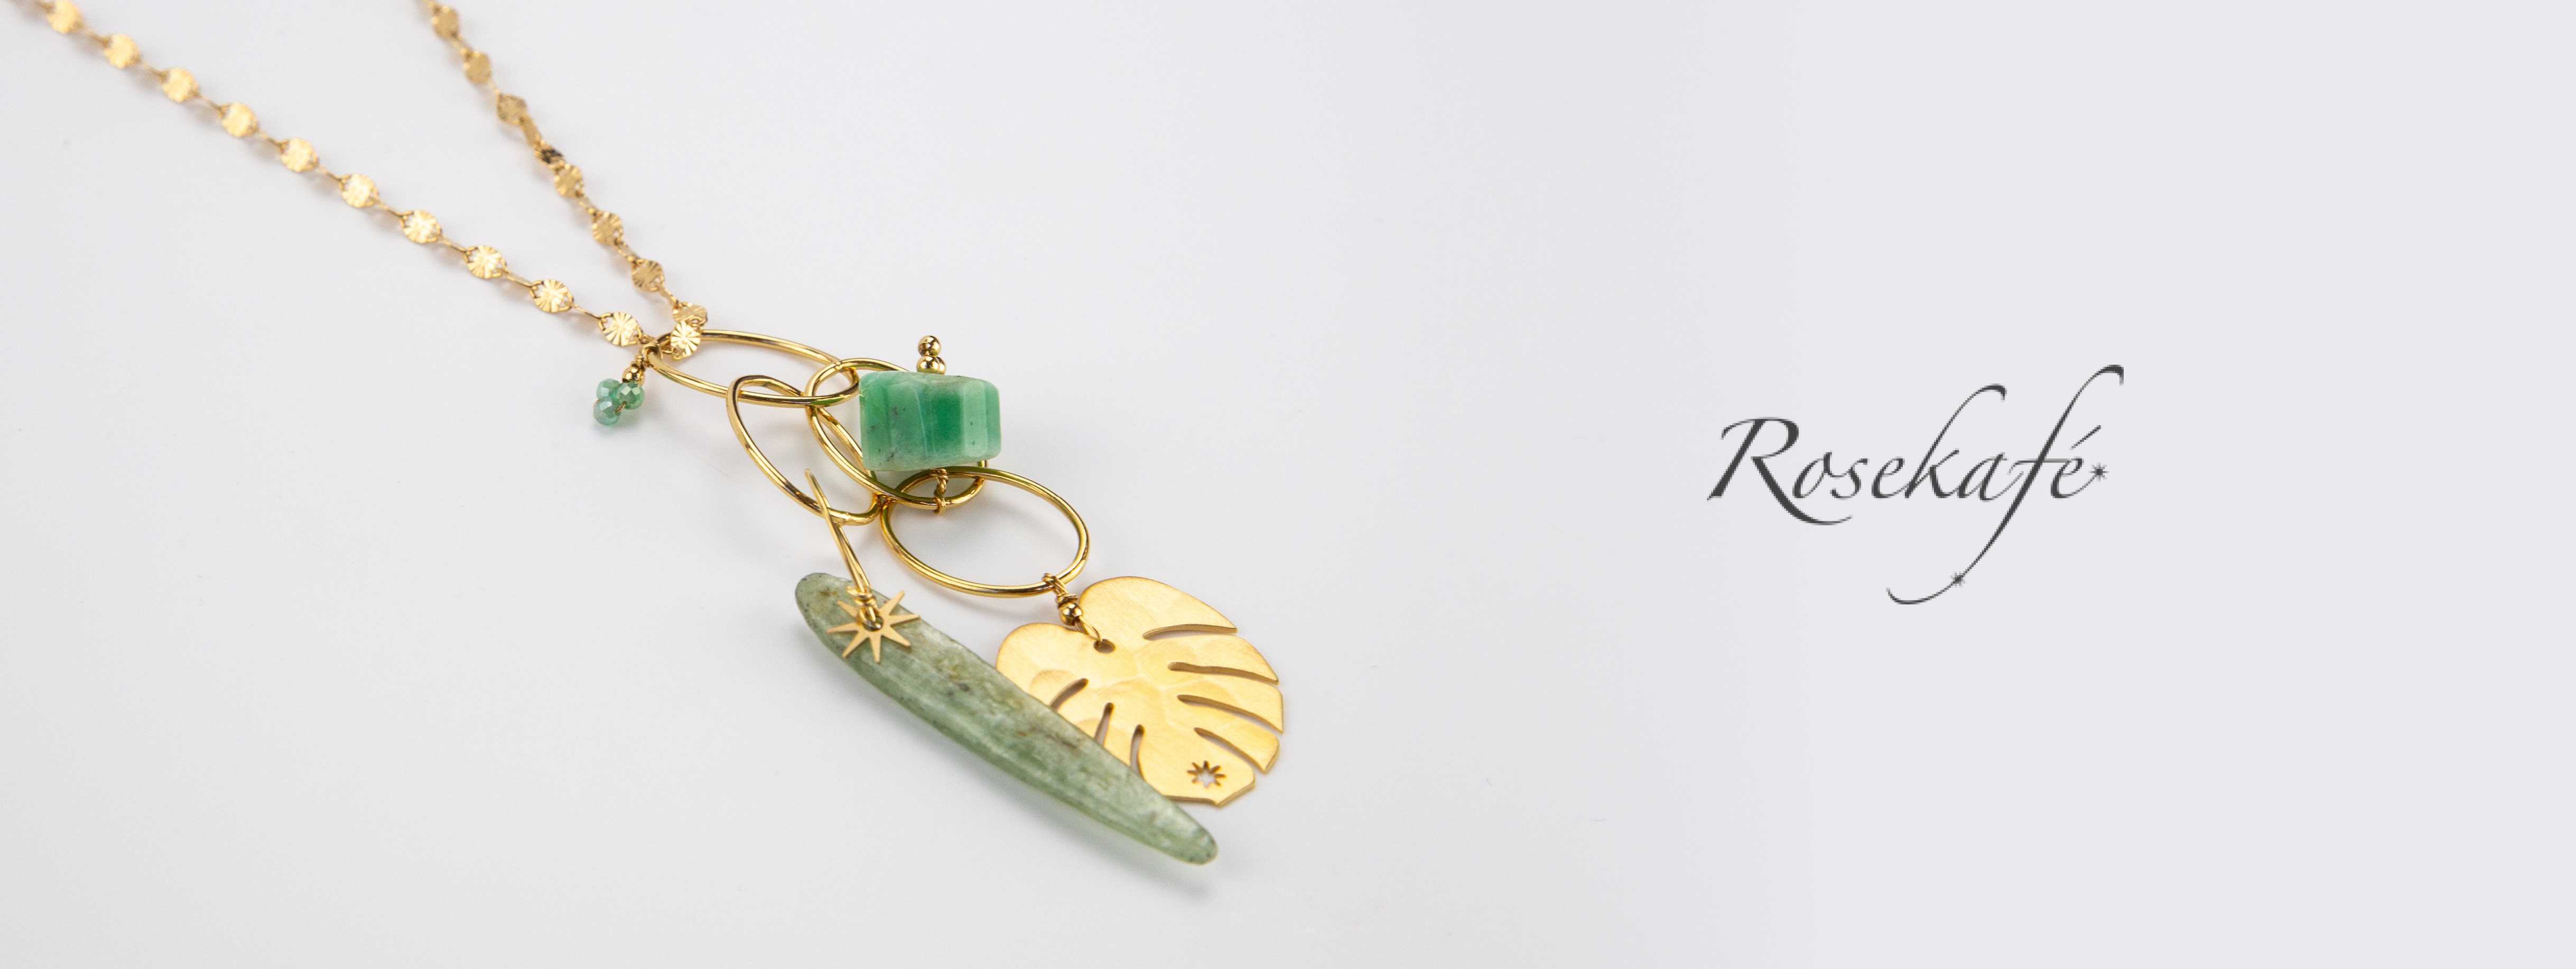 Shop Now the NEW Spring Summer 2019 Rosekafé jewellery Collection